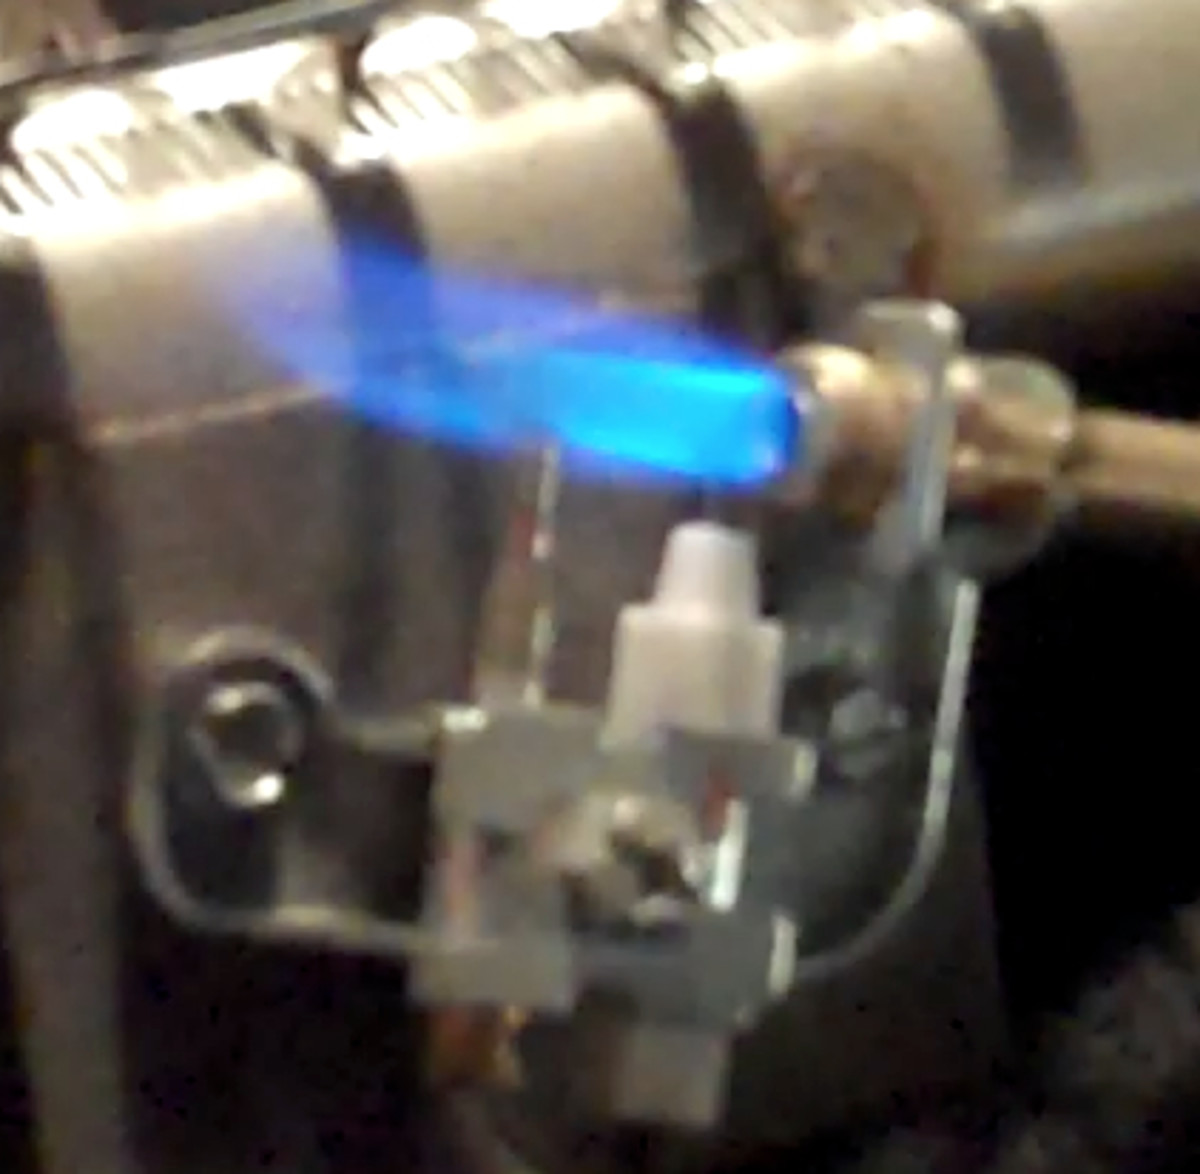 Ventless gas fireplace close up of pilot assembly showing the pilot flame, thermocouple and ignition electrode.